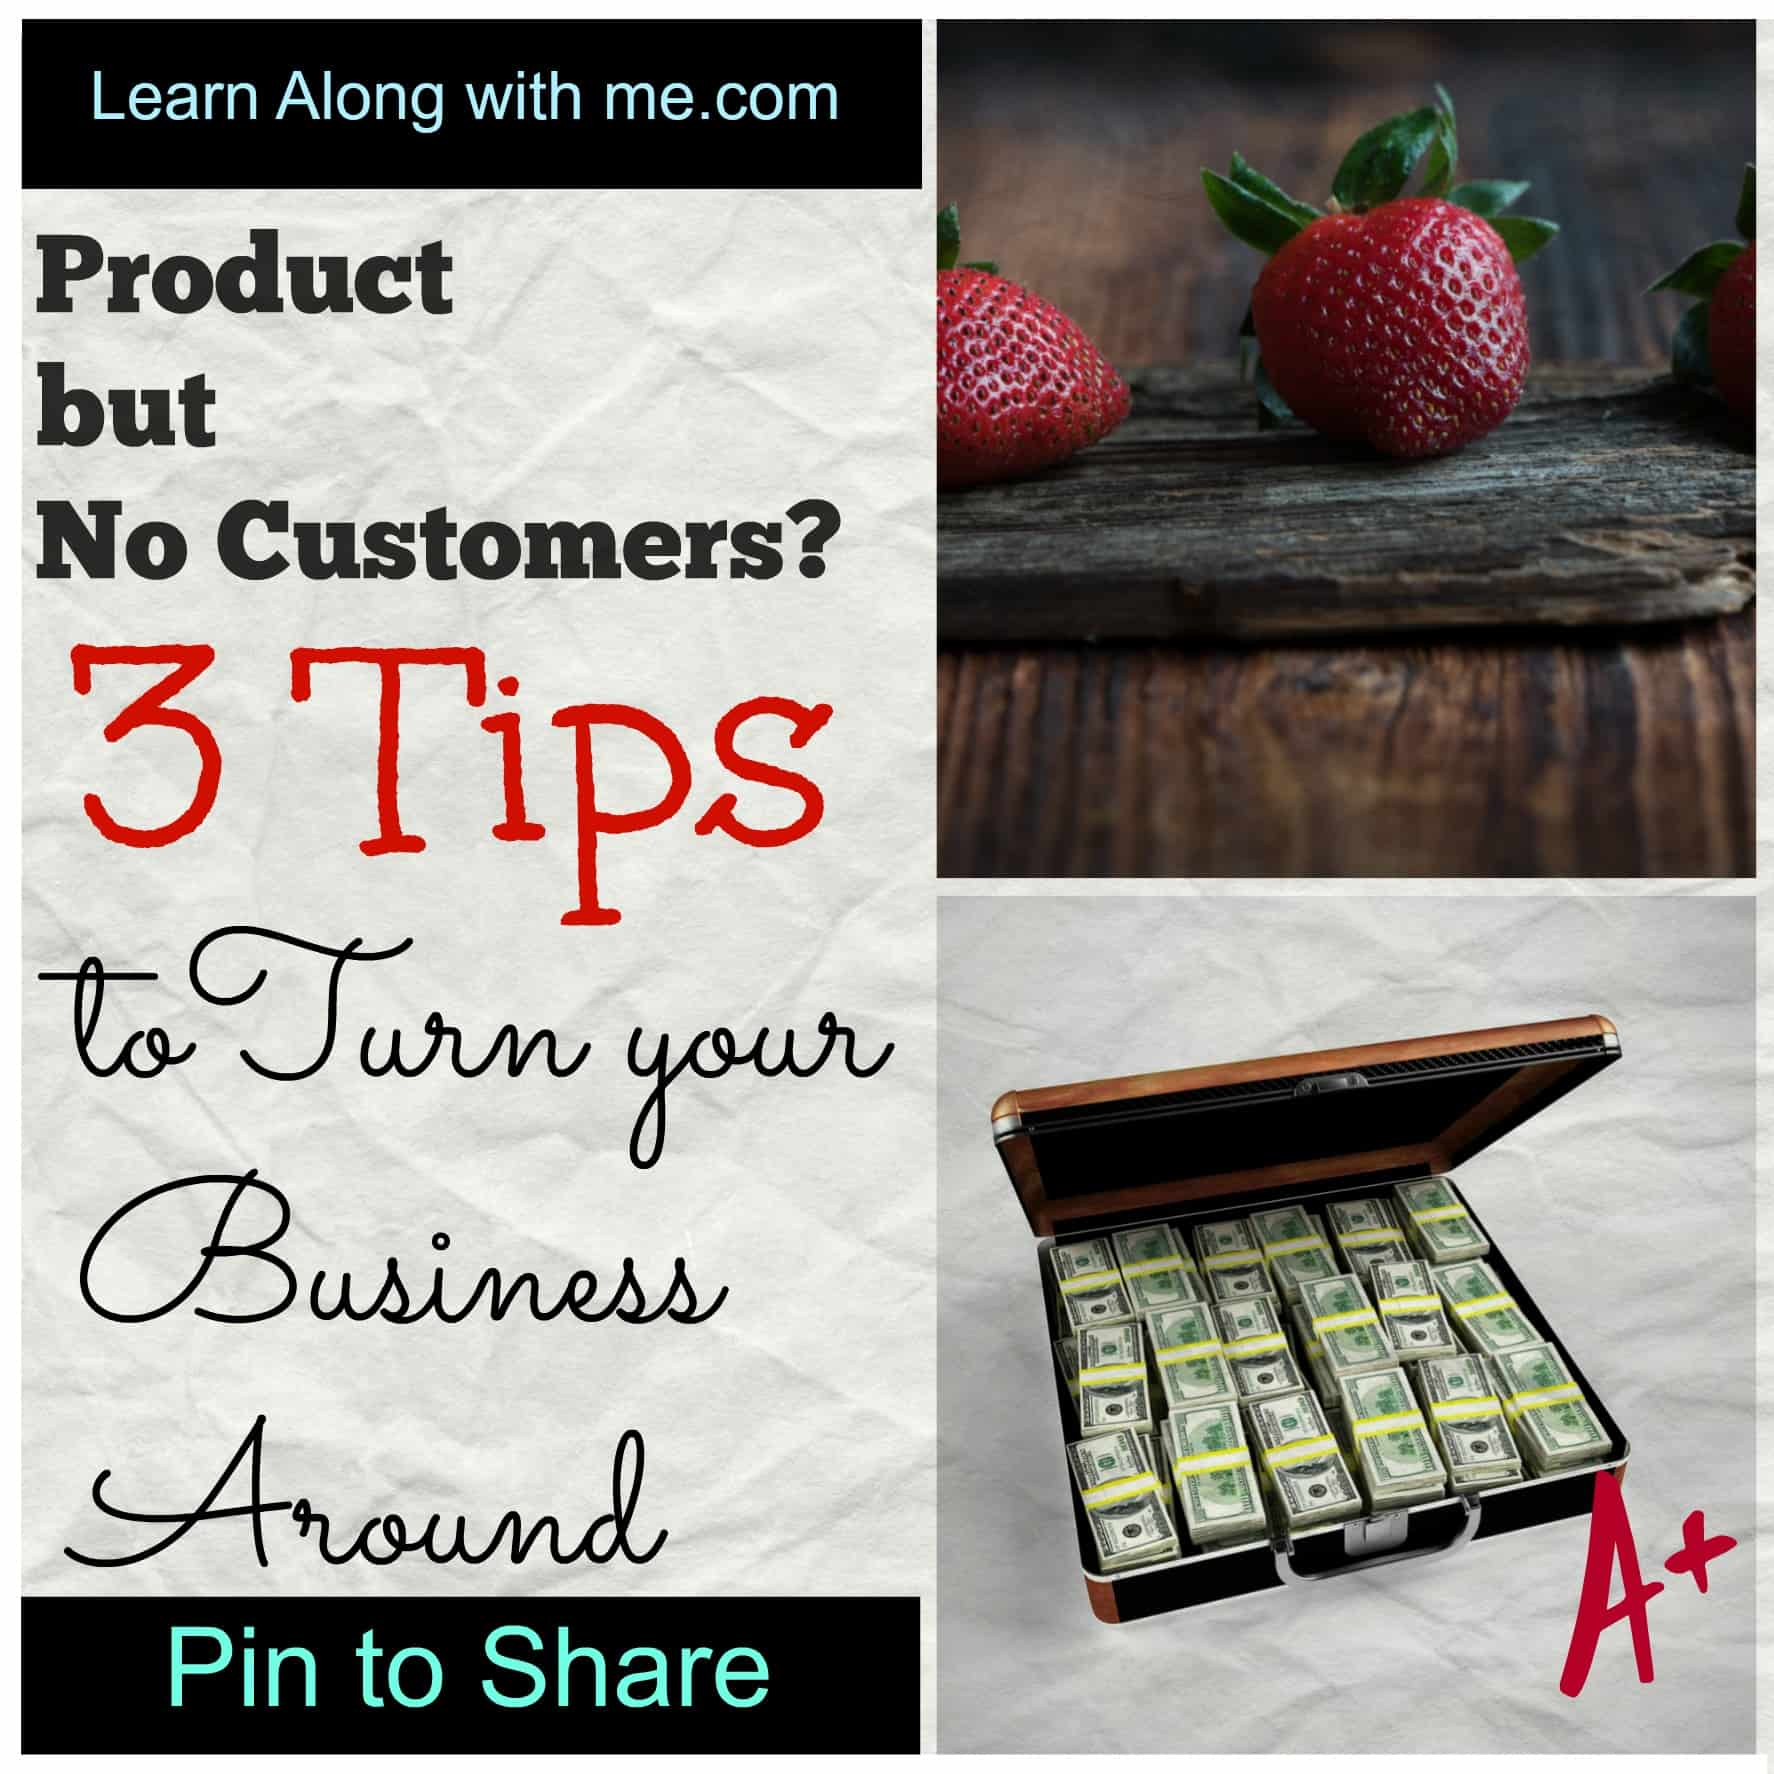 Product but no customers? Determine your ideal customers